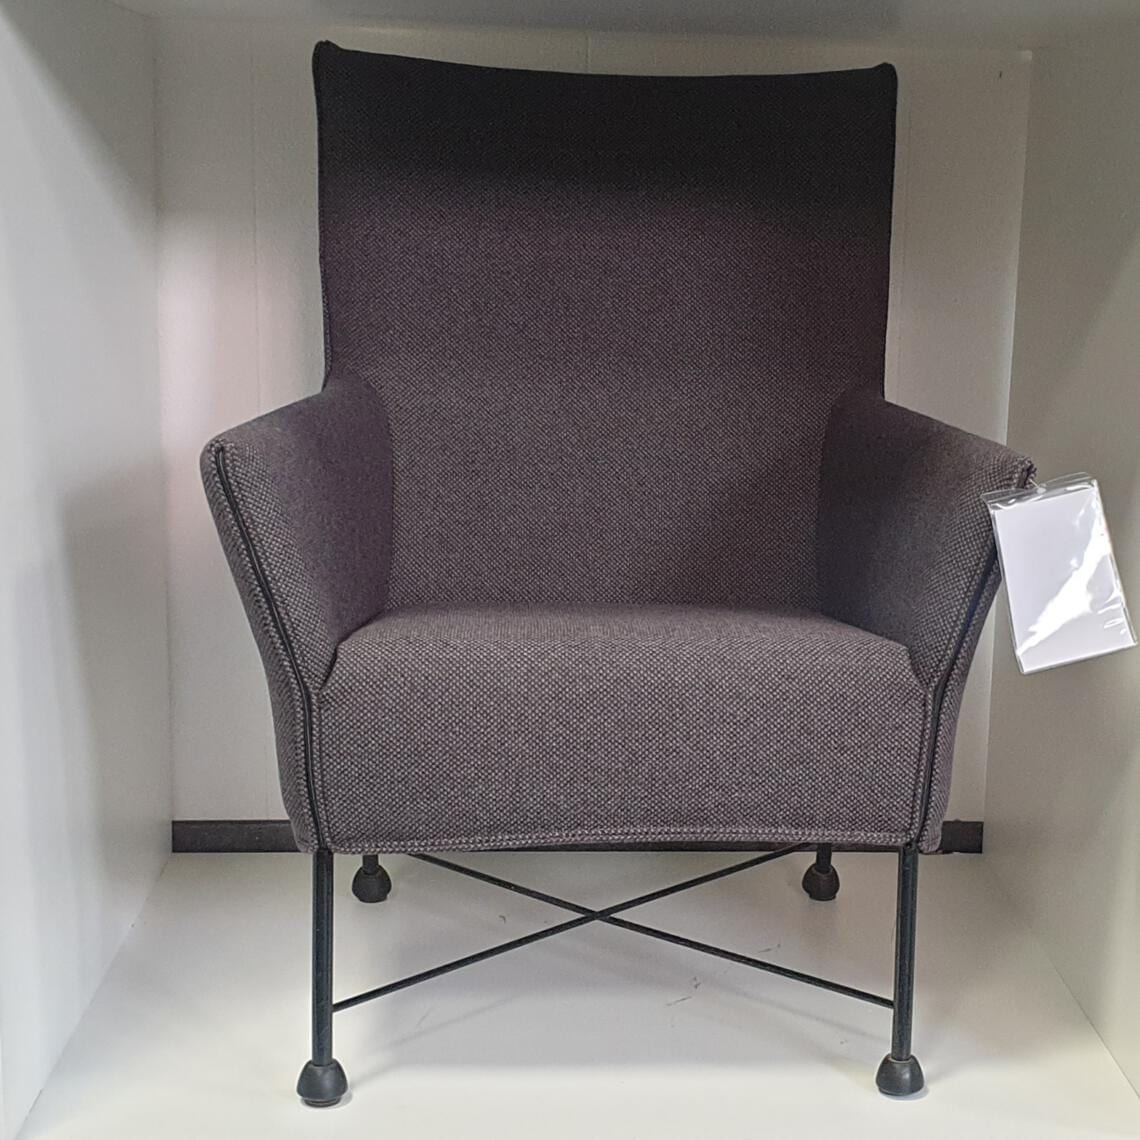 Montis Charly fauteuil panama kl37  - Refurbished